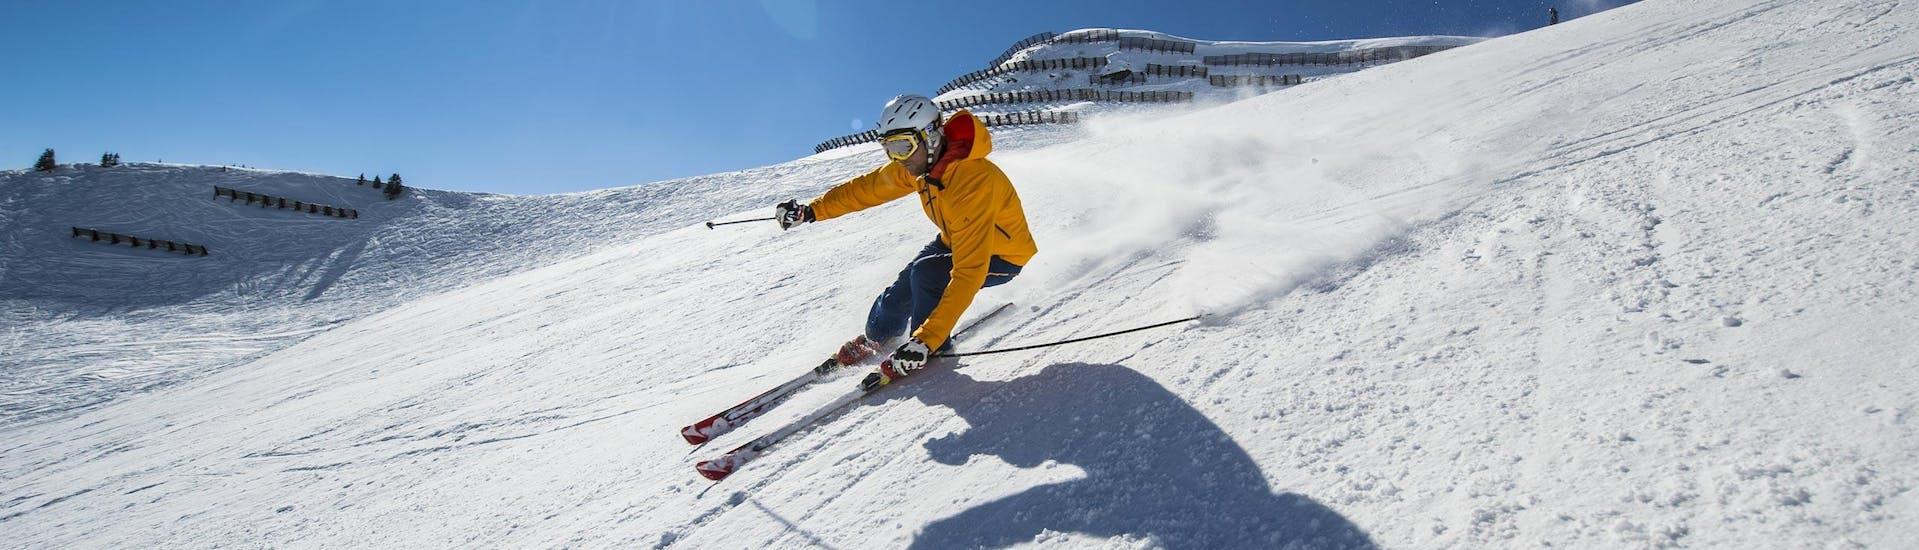 Private Ski Lessons for Adults of All Levels: A skier is skiing down a sunny ski slope while participating in an activity offered by Skischule Waidring Steinplatte.